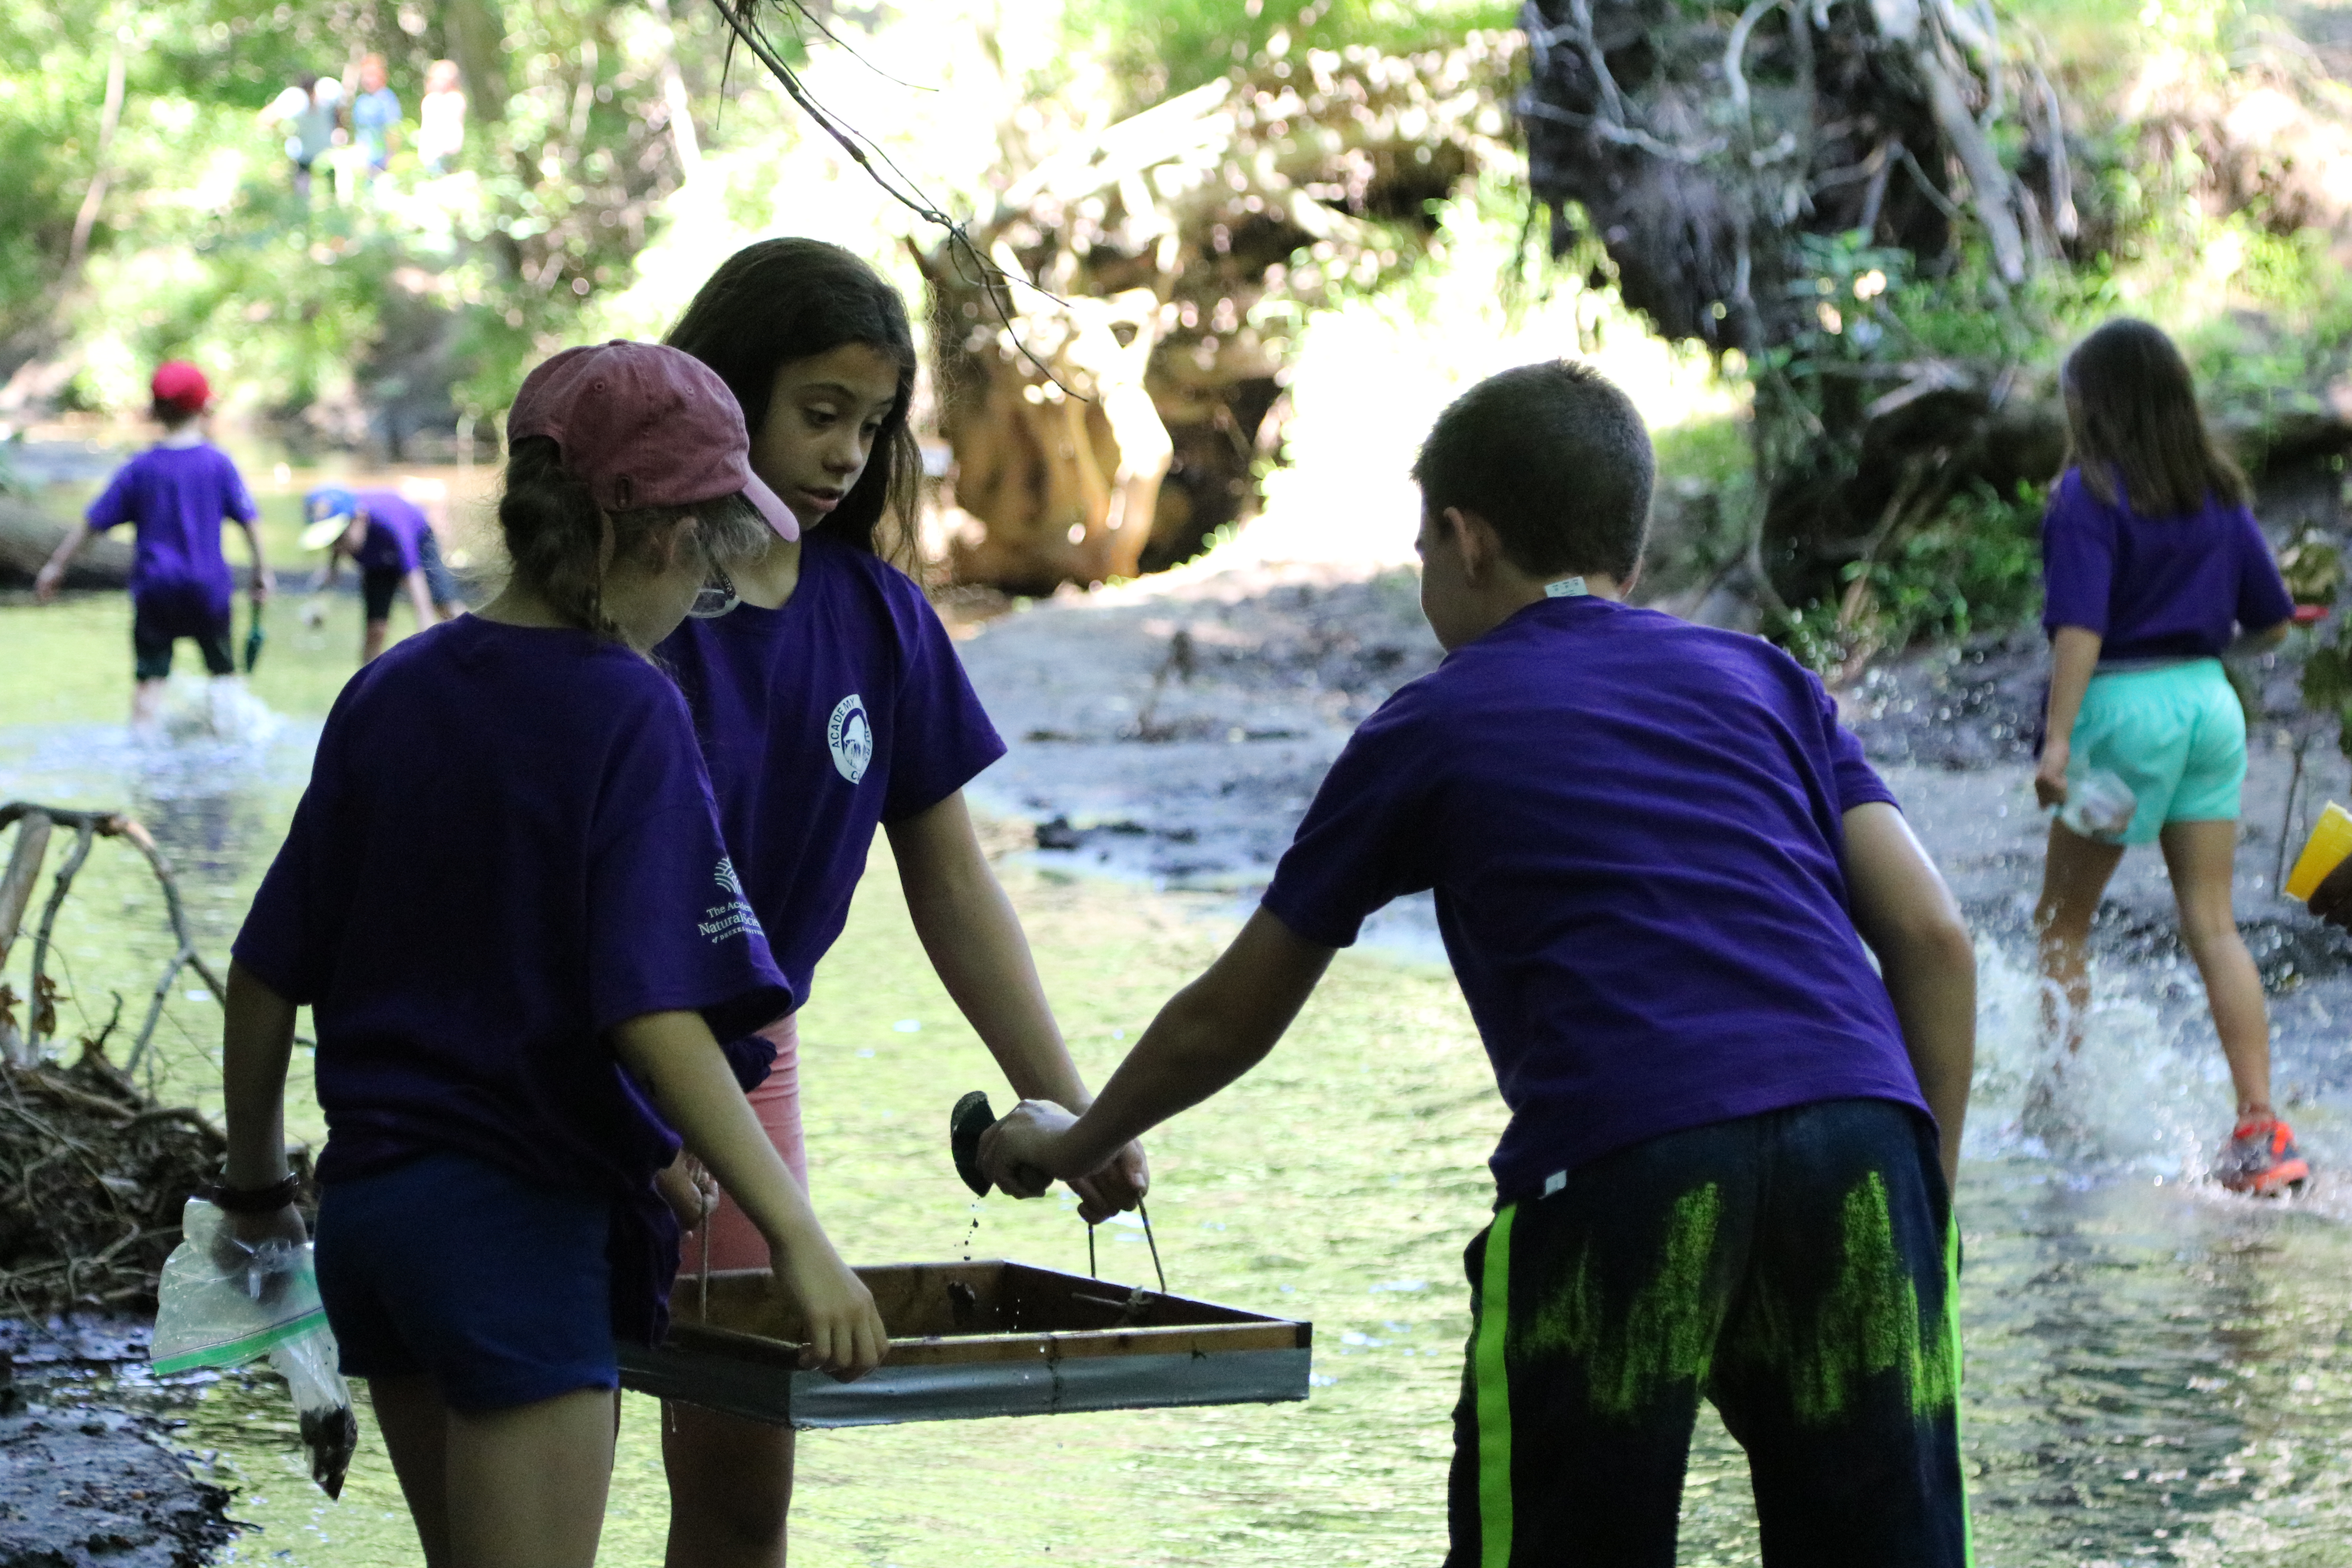 Teen Expedition Camp, Academy of Natural Sciences